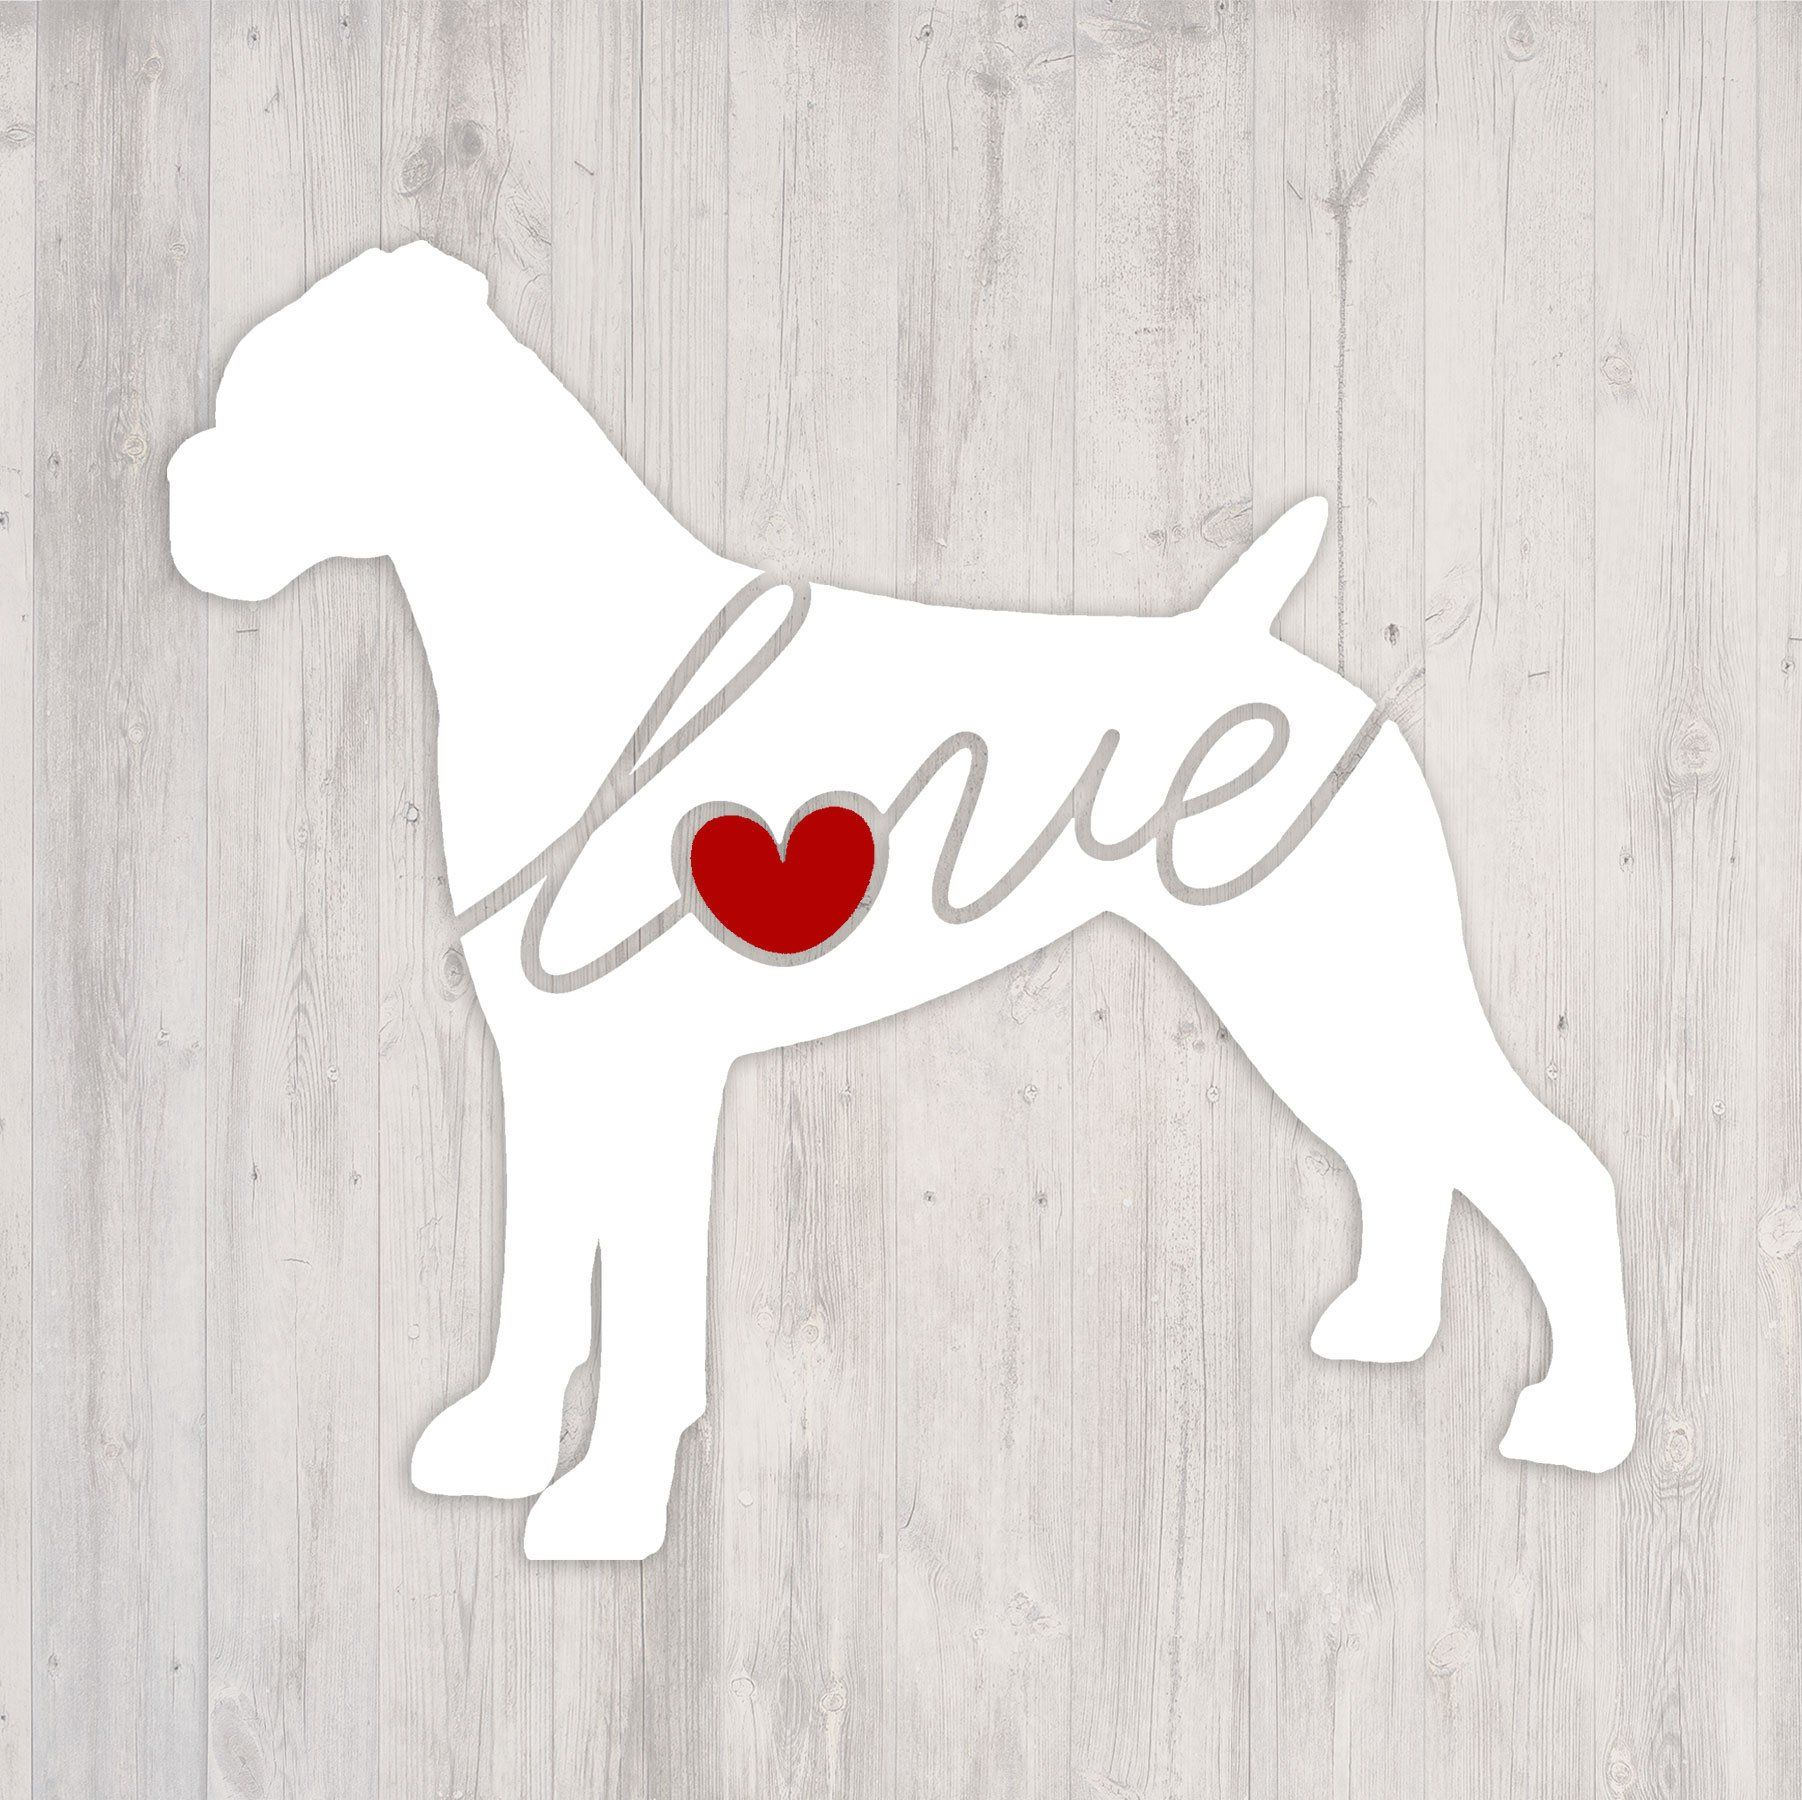 Boxer Love A Car Window Vinyl Decal Laptop Sticker Dog Breed Decals Dog Stickers Cooler Decal Gift For Dog Lover Dog Breed Decal Dog Gifts Mastiffs [ 1800 x 1802 Pixel ]